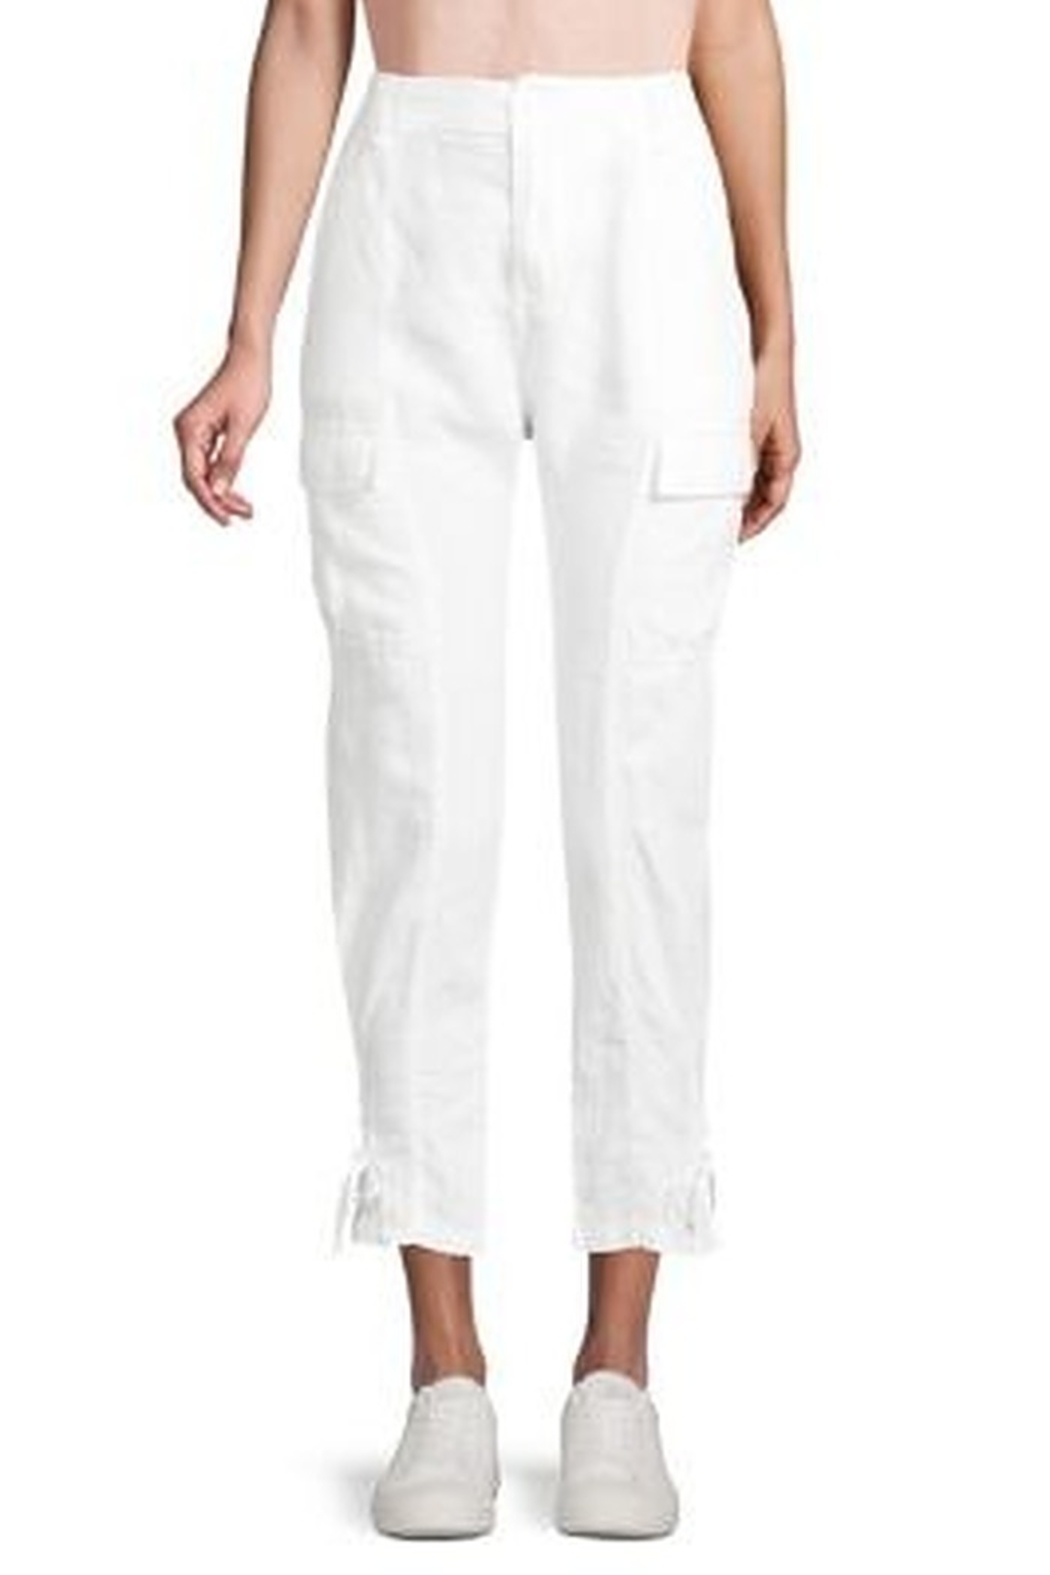 Joie Linen Porcelain White Cargo Pants with Ankle Tie - Main Image